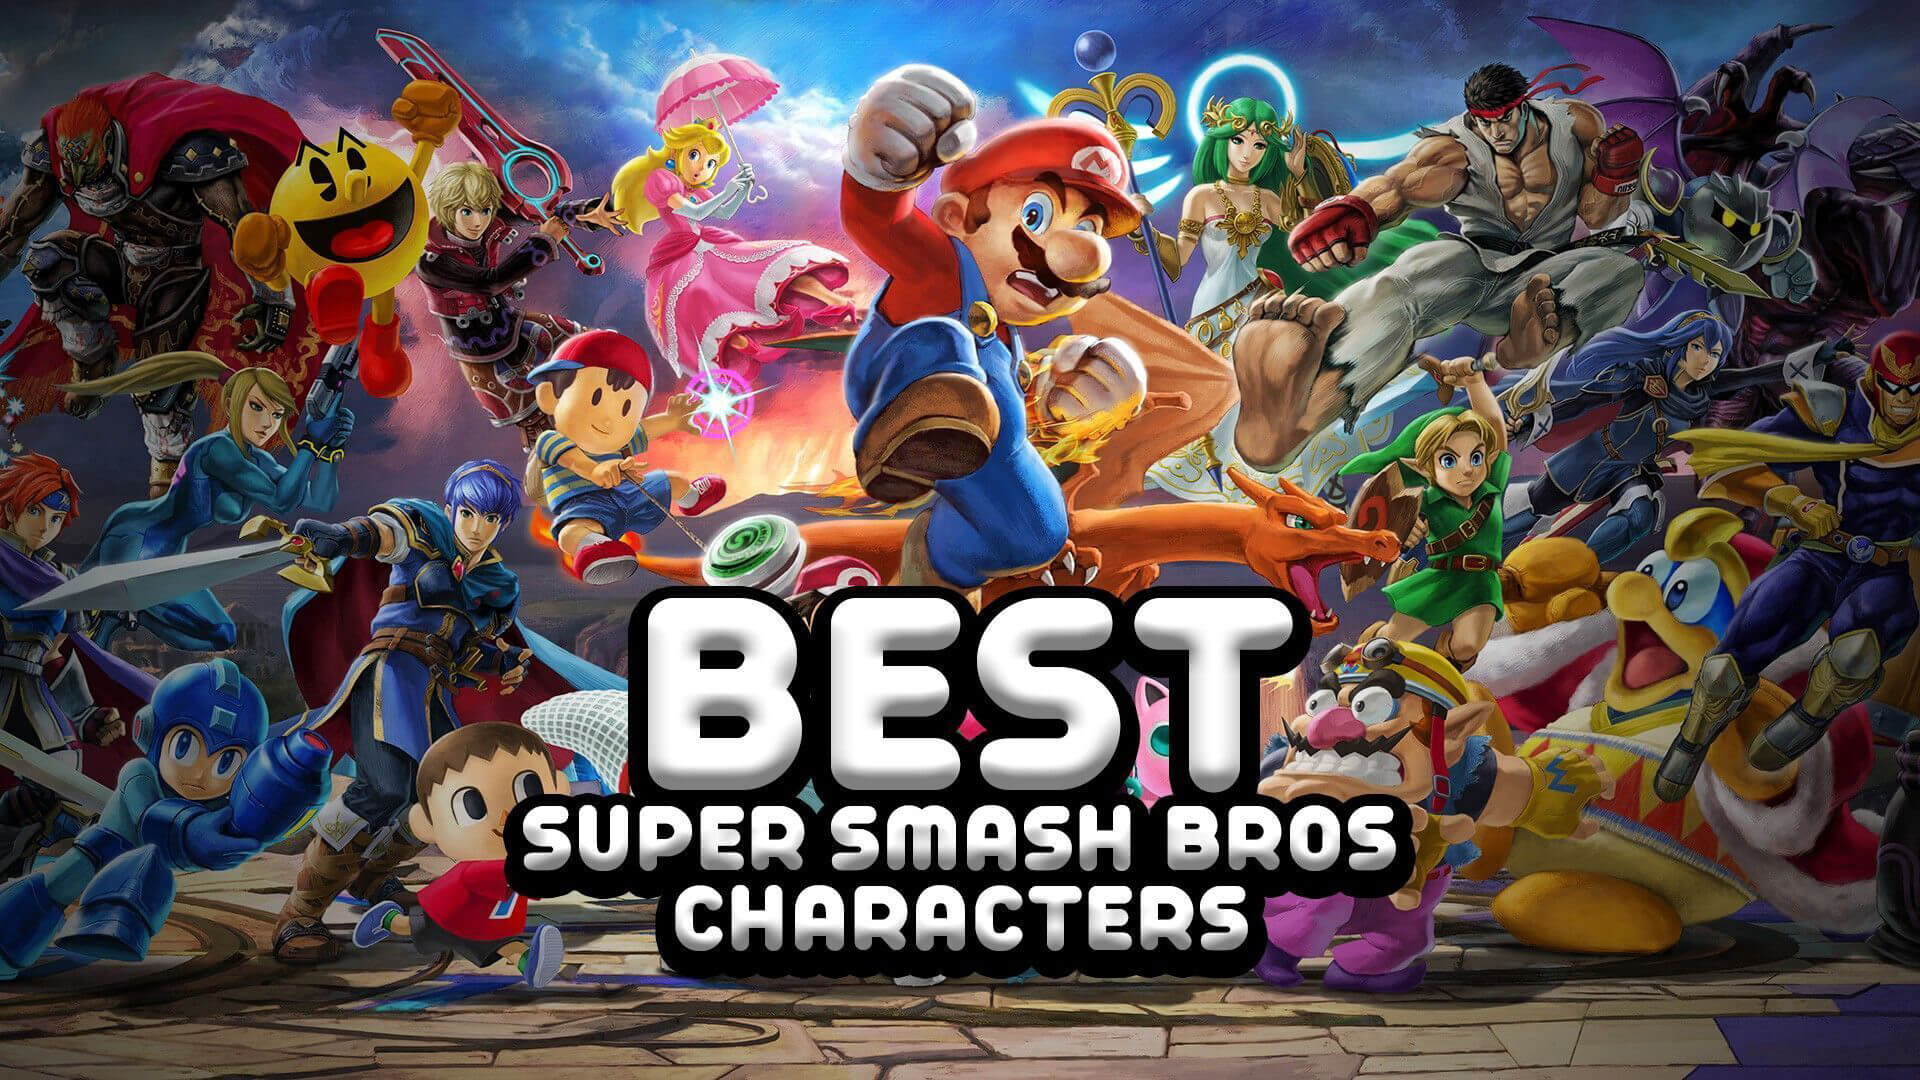 The 10 Best Super Smash Bros Characters of All Time